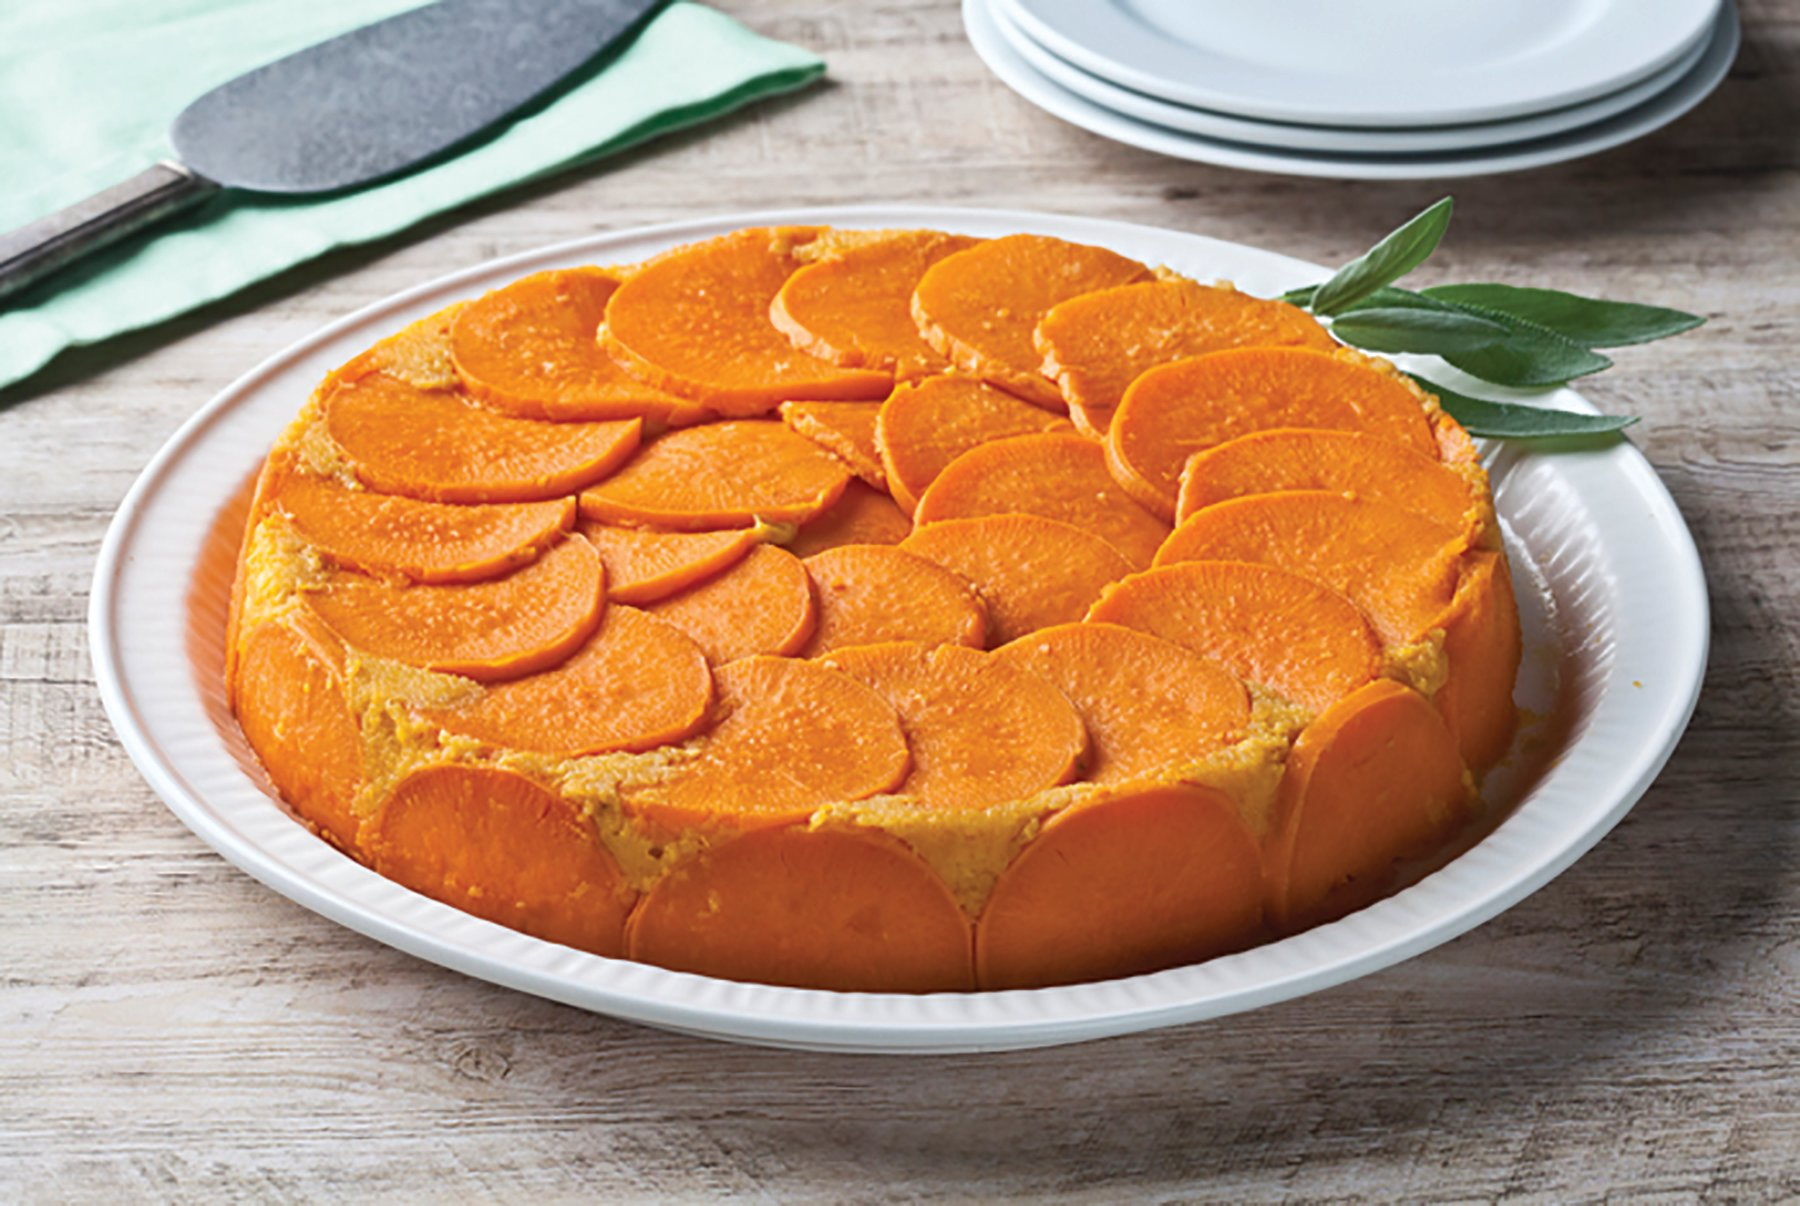 UPSIDE DOWN SWEET POTATO BAKE